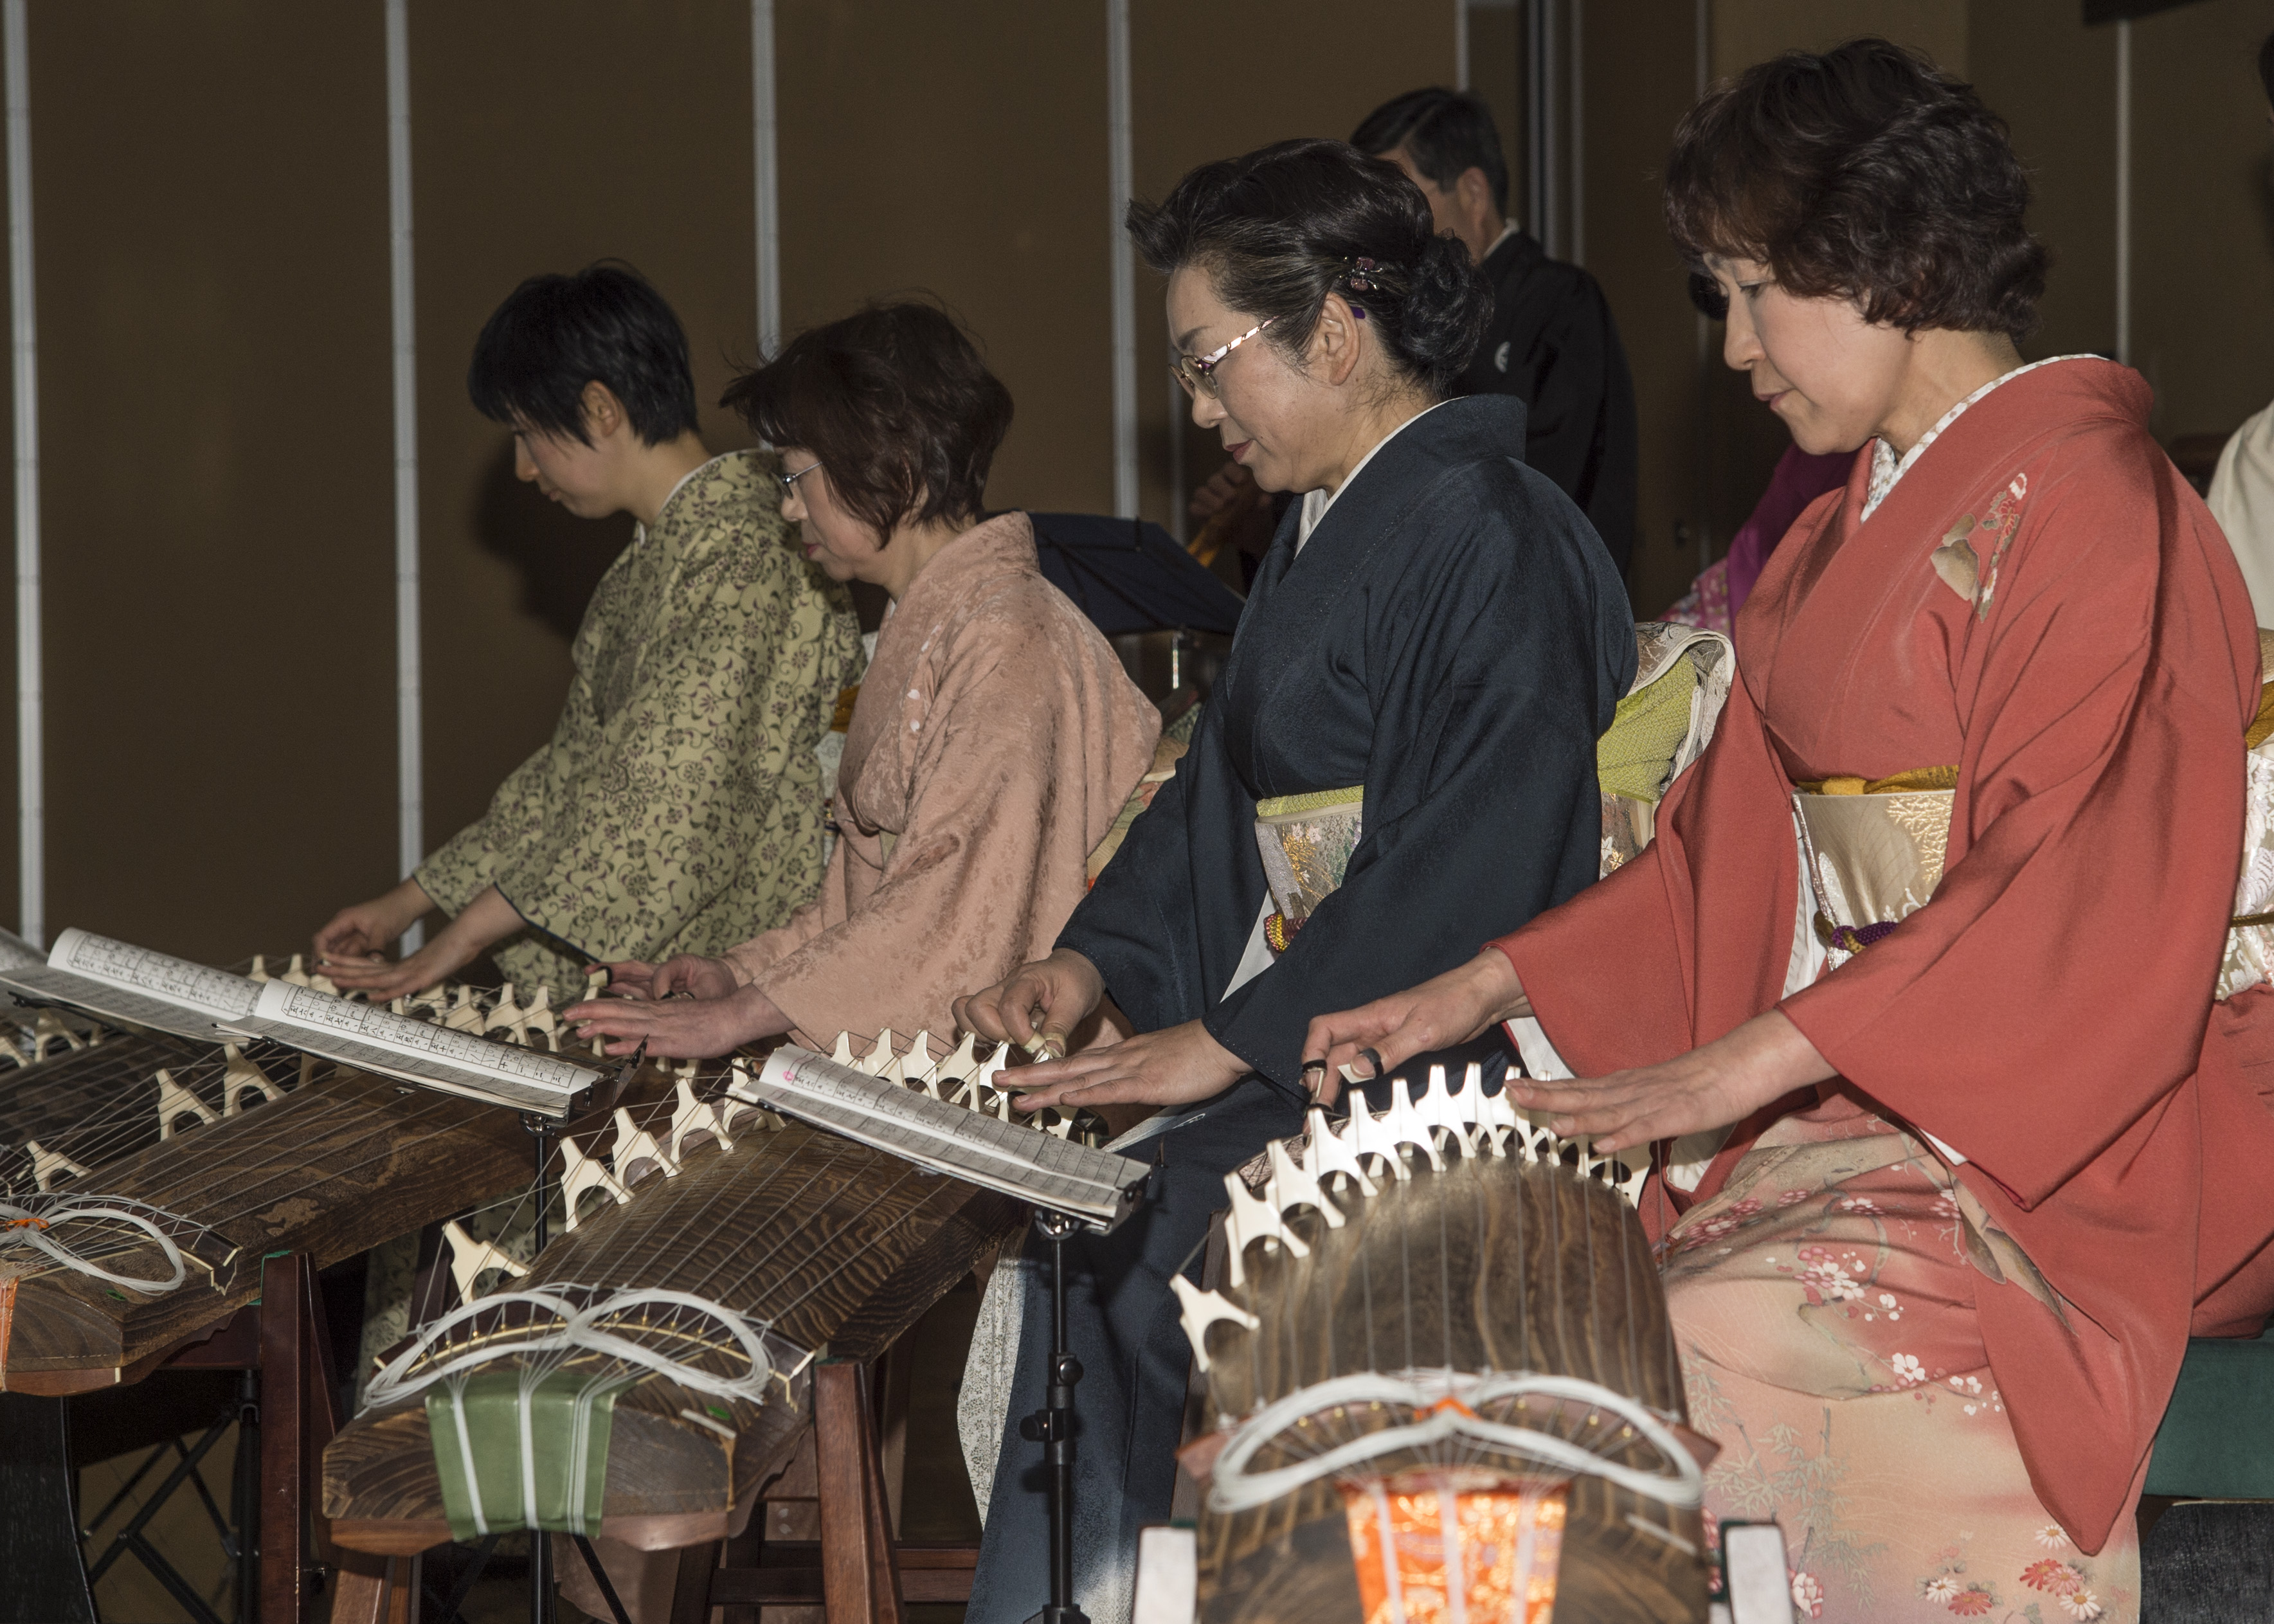 Performing traditional Japanese music